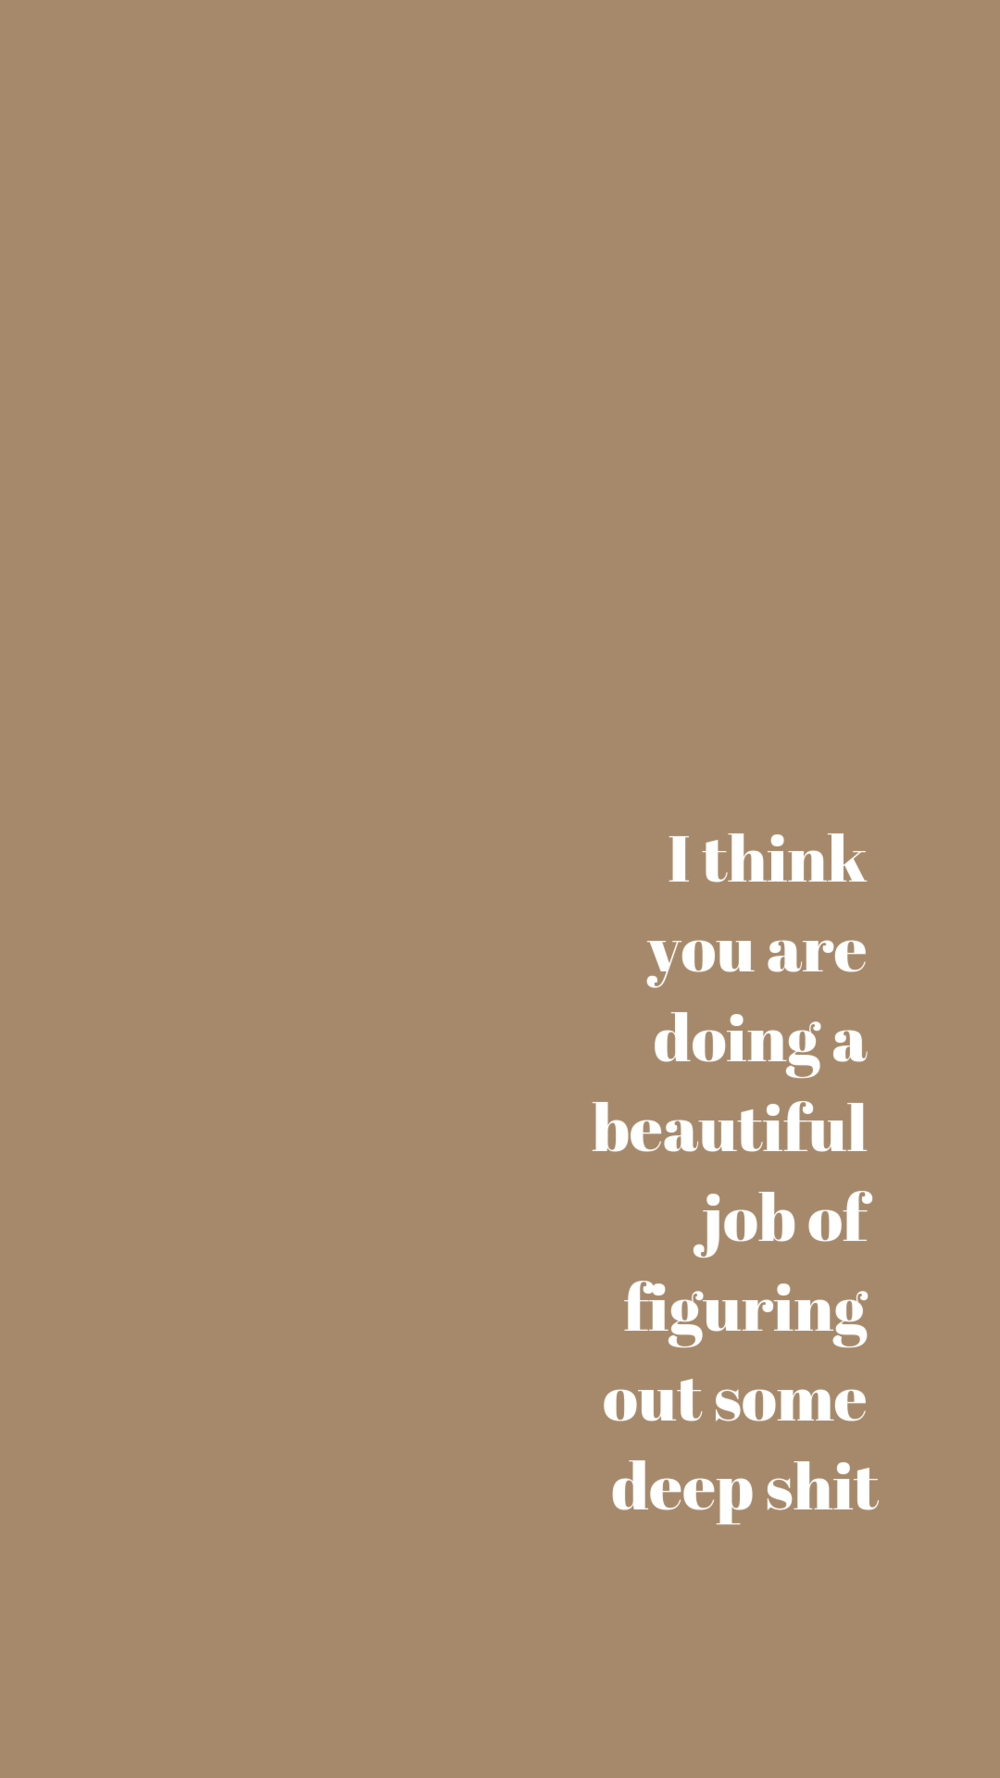 You are doing a beautiful job of figuring out some deep shit | Empowering Quotes for Your Phone Screen Background | Miranda Schroeder Blog | www.mirandaschroeder.com